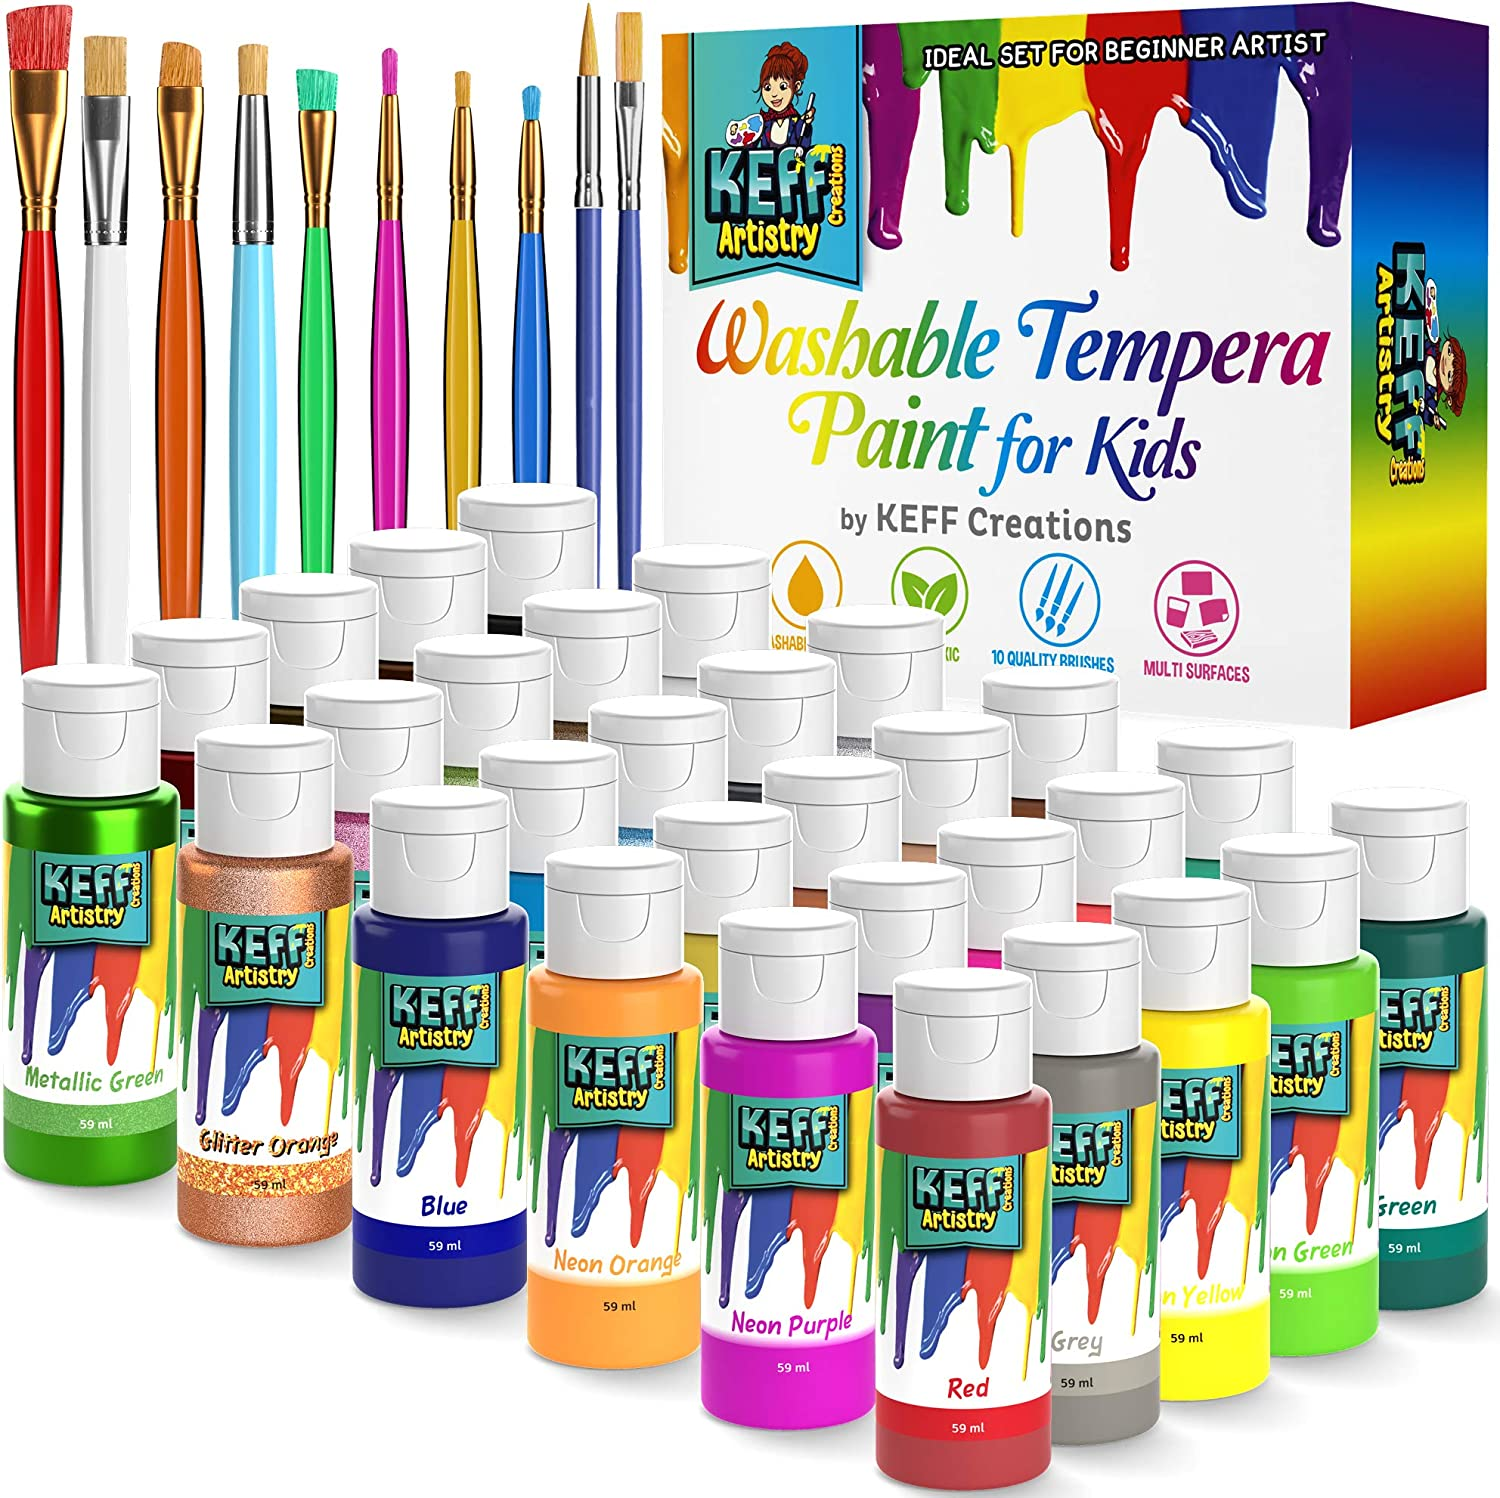 Washable Kids Paint Set - Premium quality 30 Vibrant Kids Finger Paint bottles - Safe Nontoxic Washable Paint for Kids - Tempera Paint in Fun Variety of Standard, Glitter, Neon and Metallic Colors